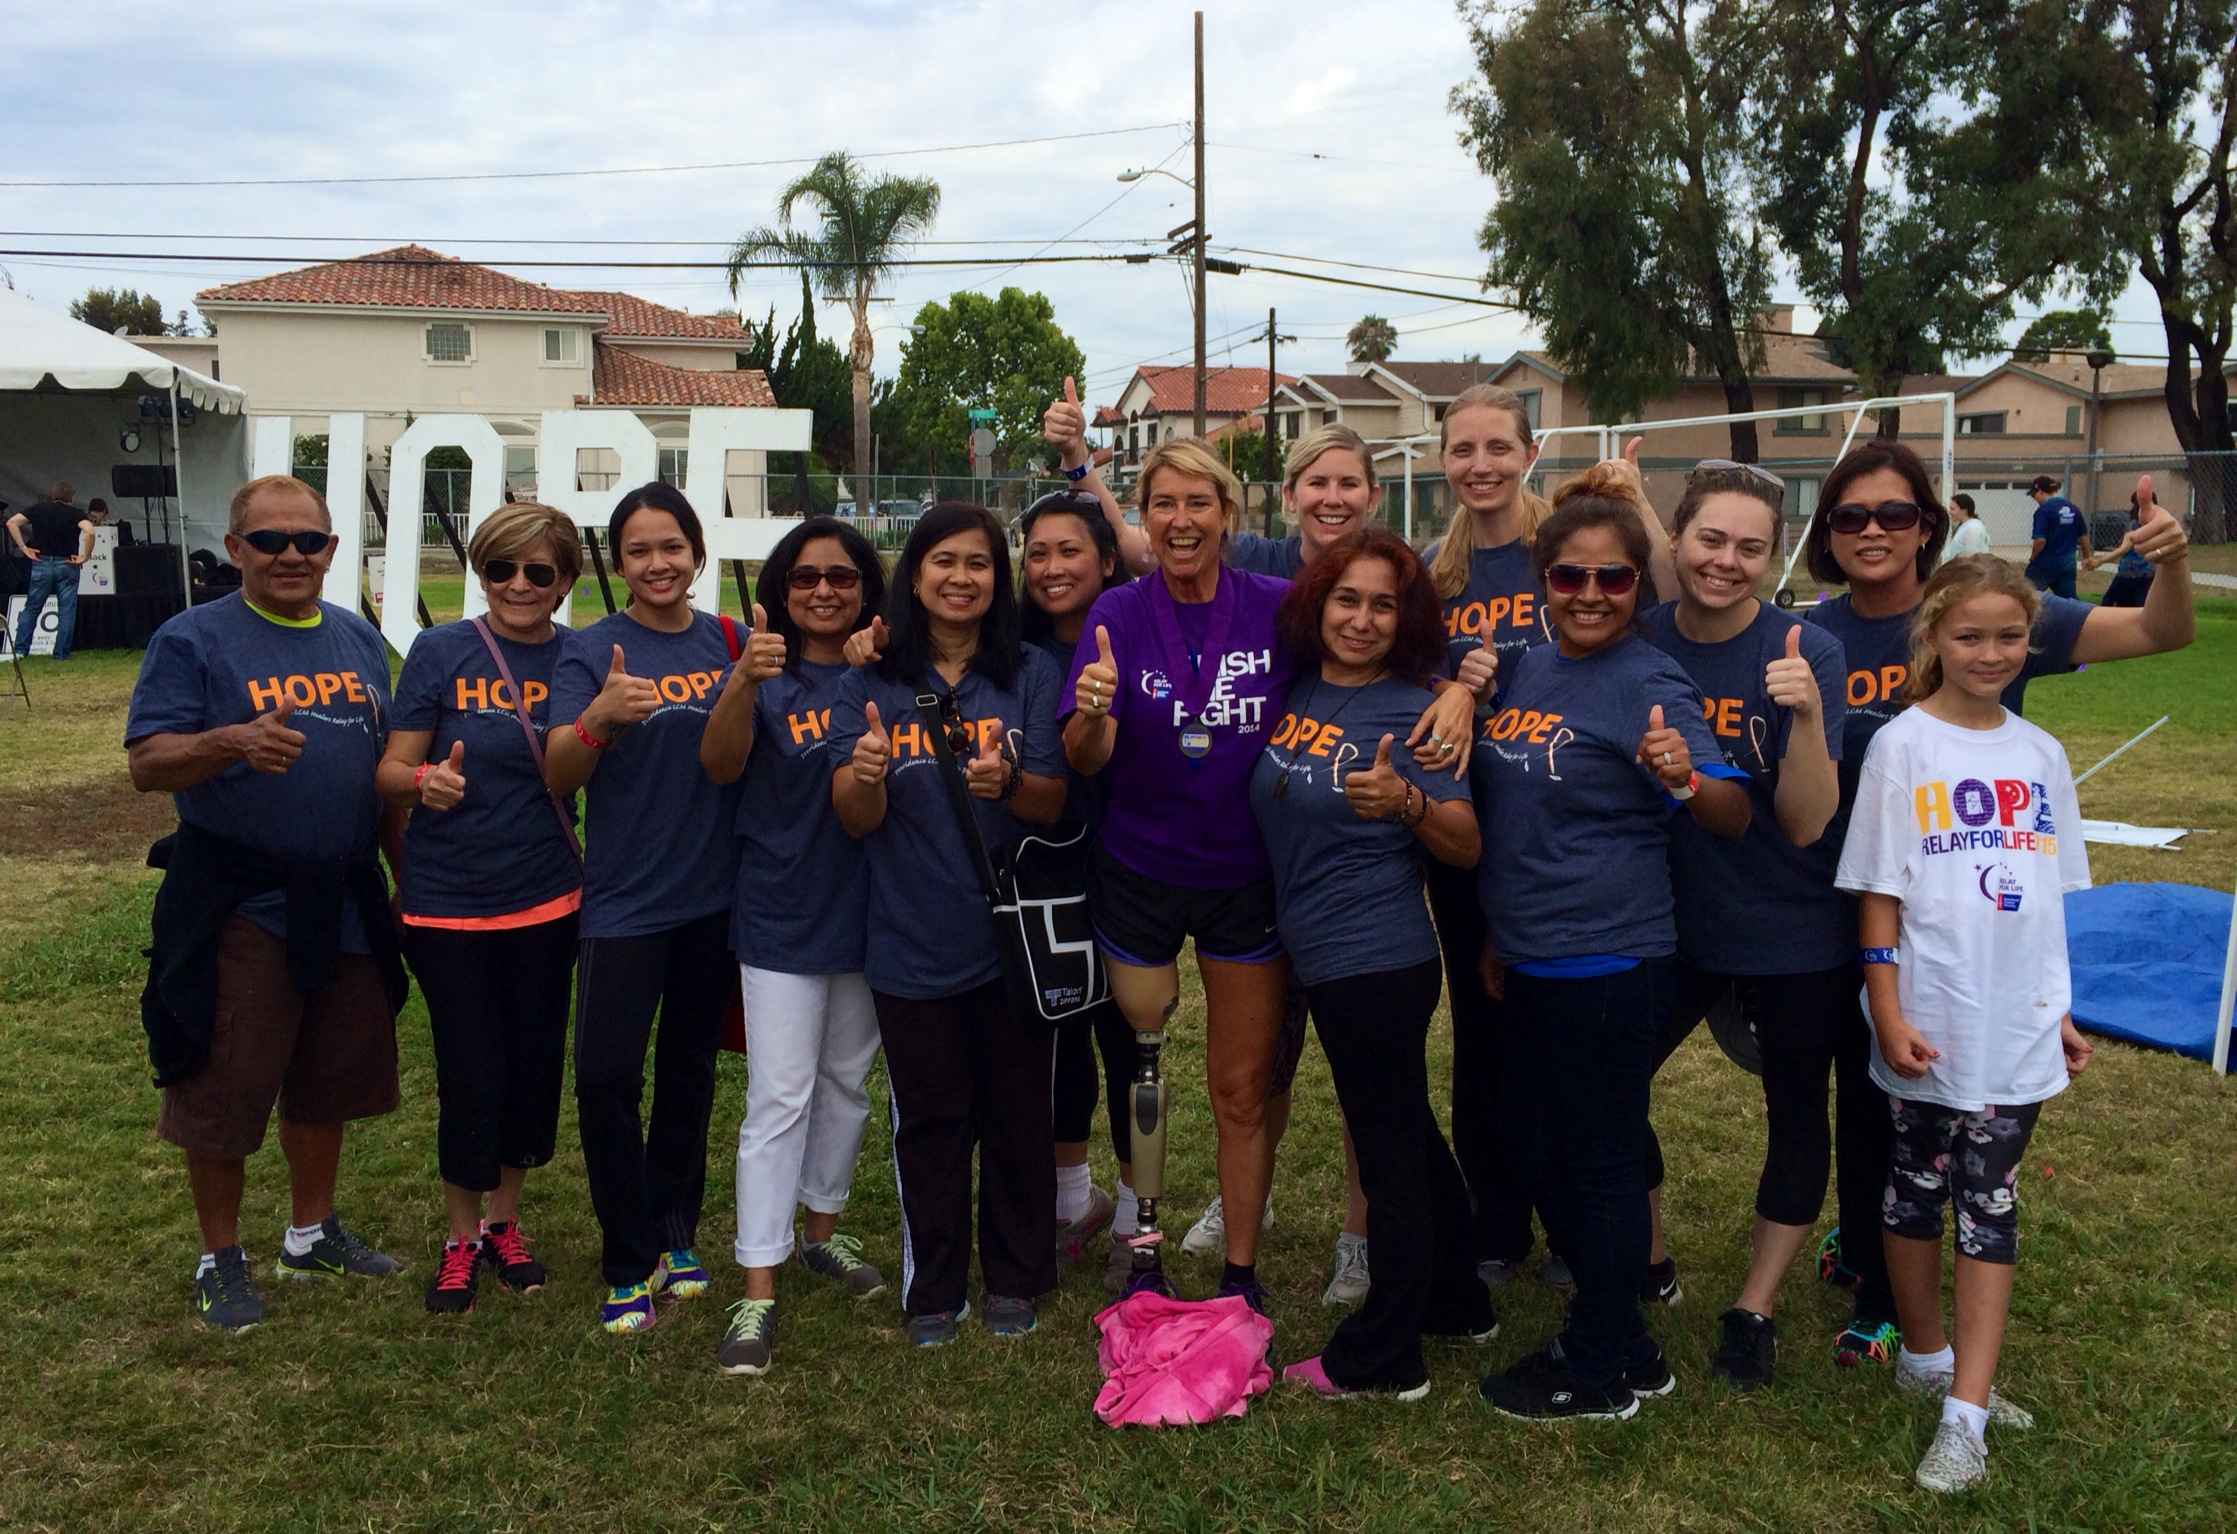 2015 Hero and Voice of Hope Adrienne Slaughter with the Providence Little Company of Mary team at Beach Cities Relay For Life on 7/18/15.